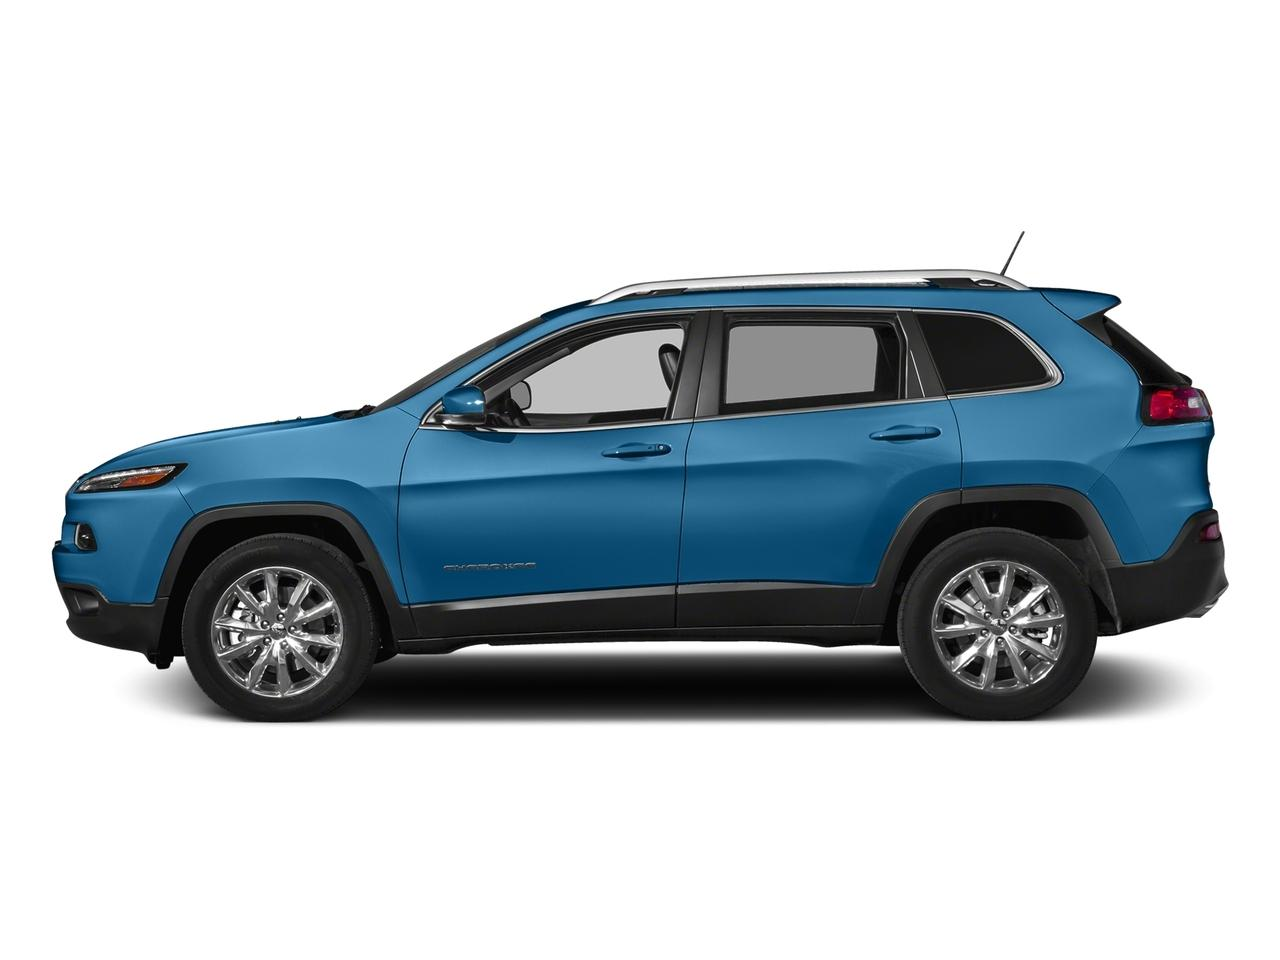 Used 2018 Jeep Cherokee Limited with VIN 1C4PJMDX7JD534570 for sale in Brooklyn Center, Minnesota